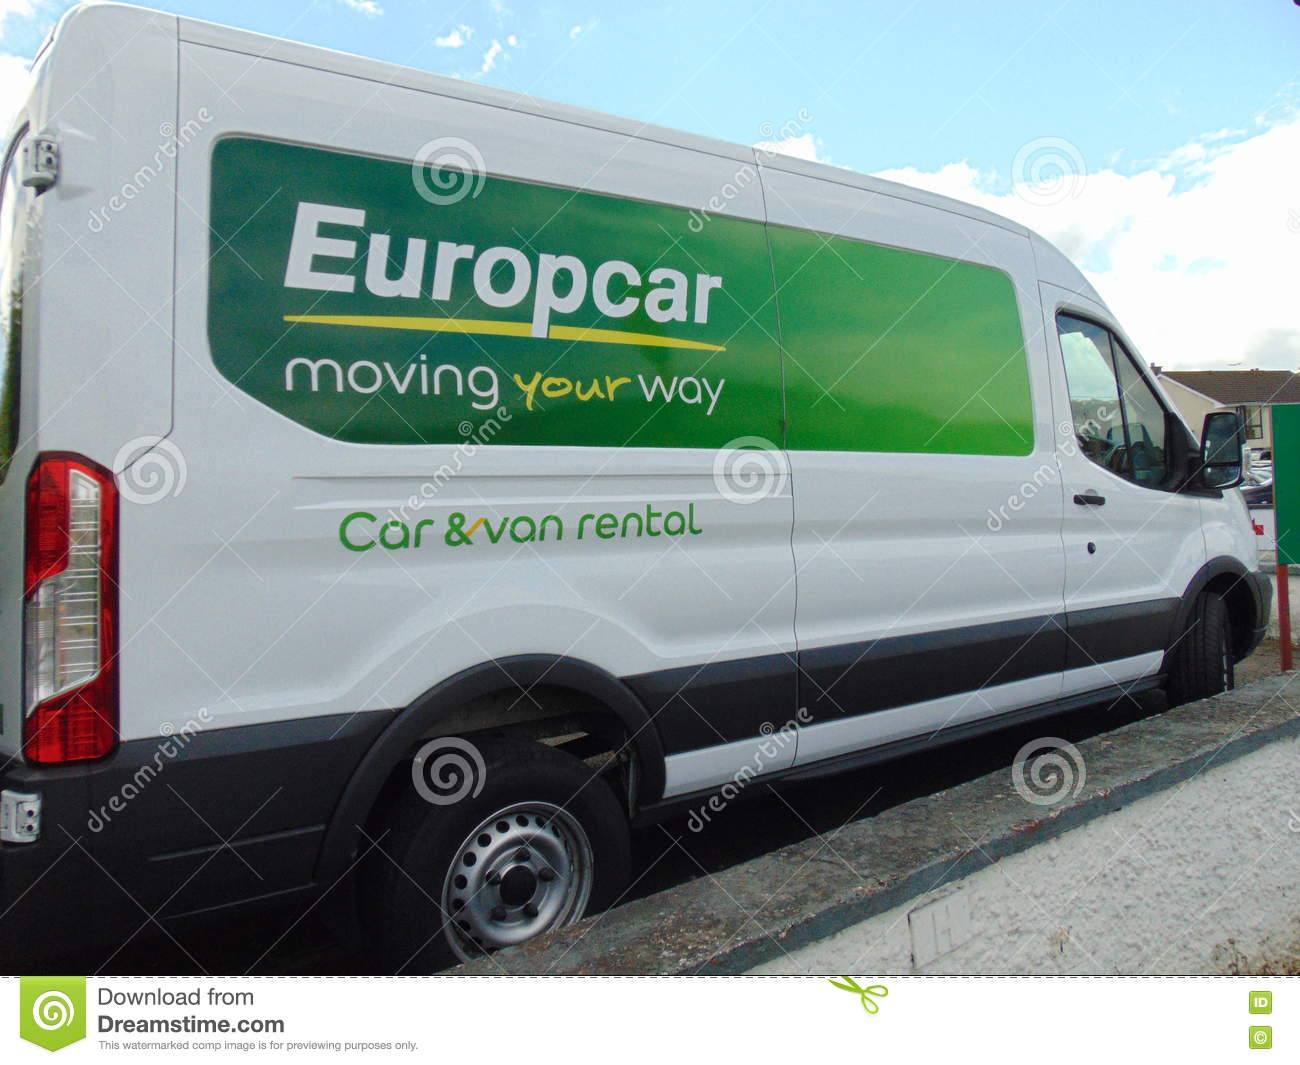 Europcar Van Editorial Stock Photo Image Of Irish Hire 74766113